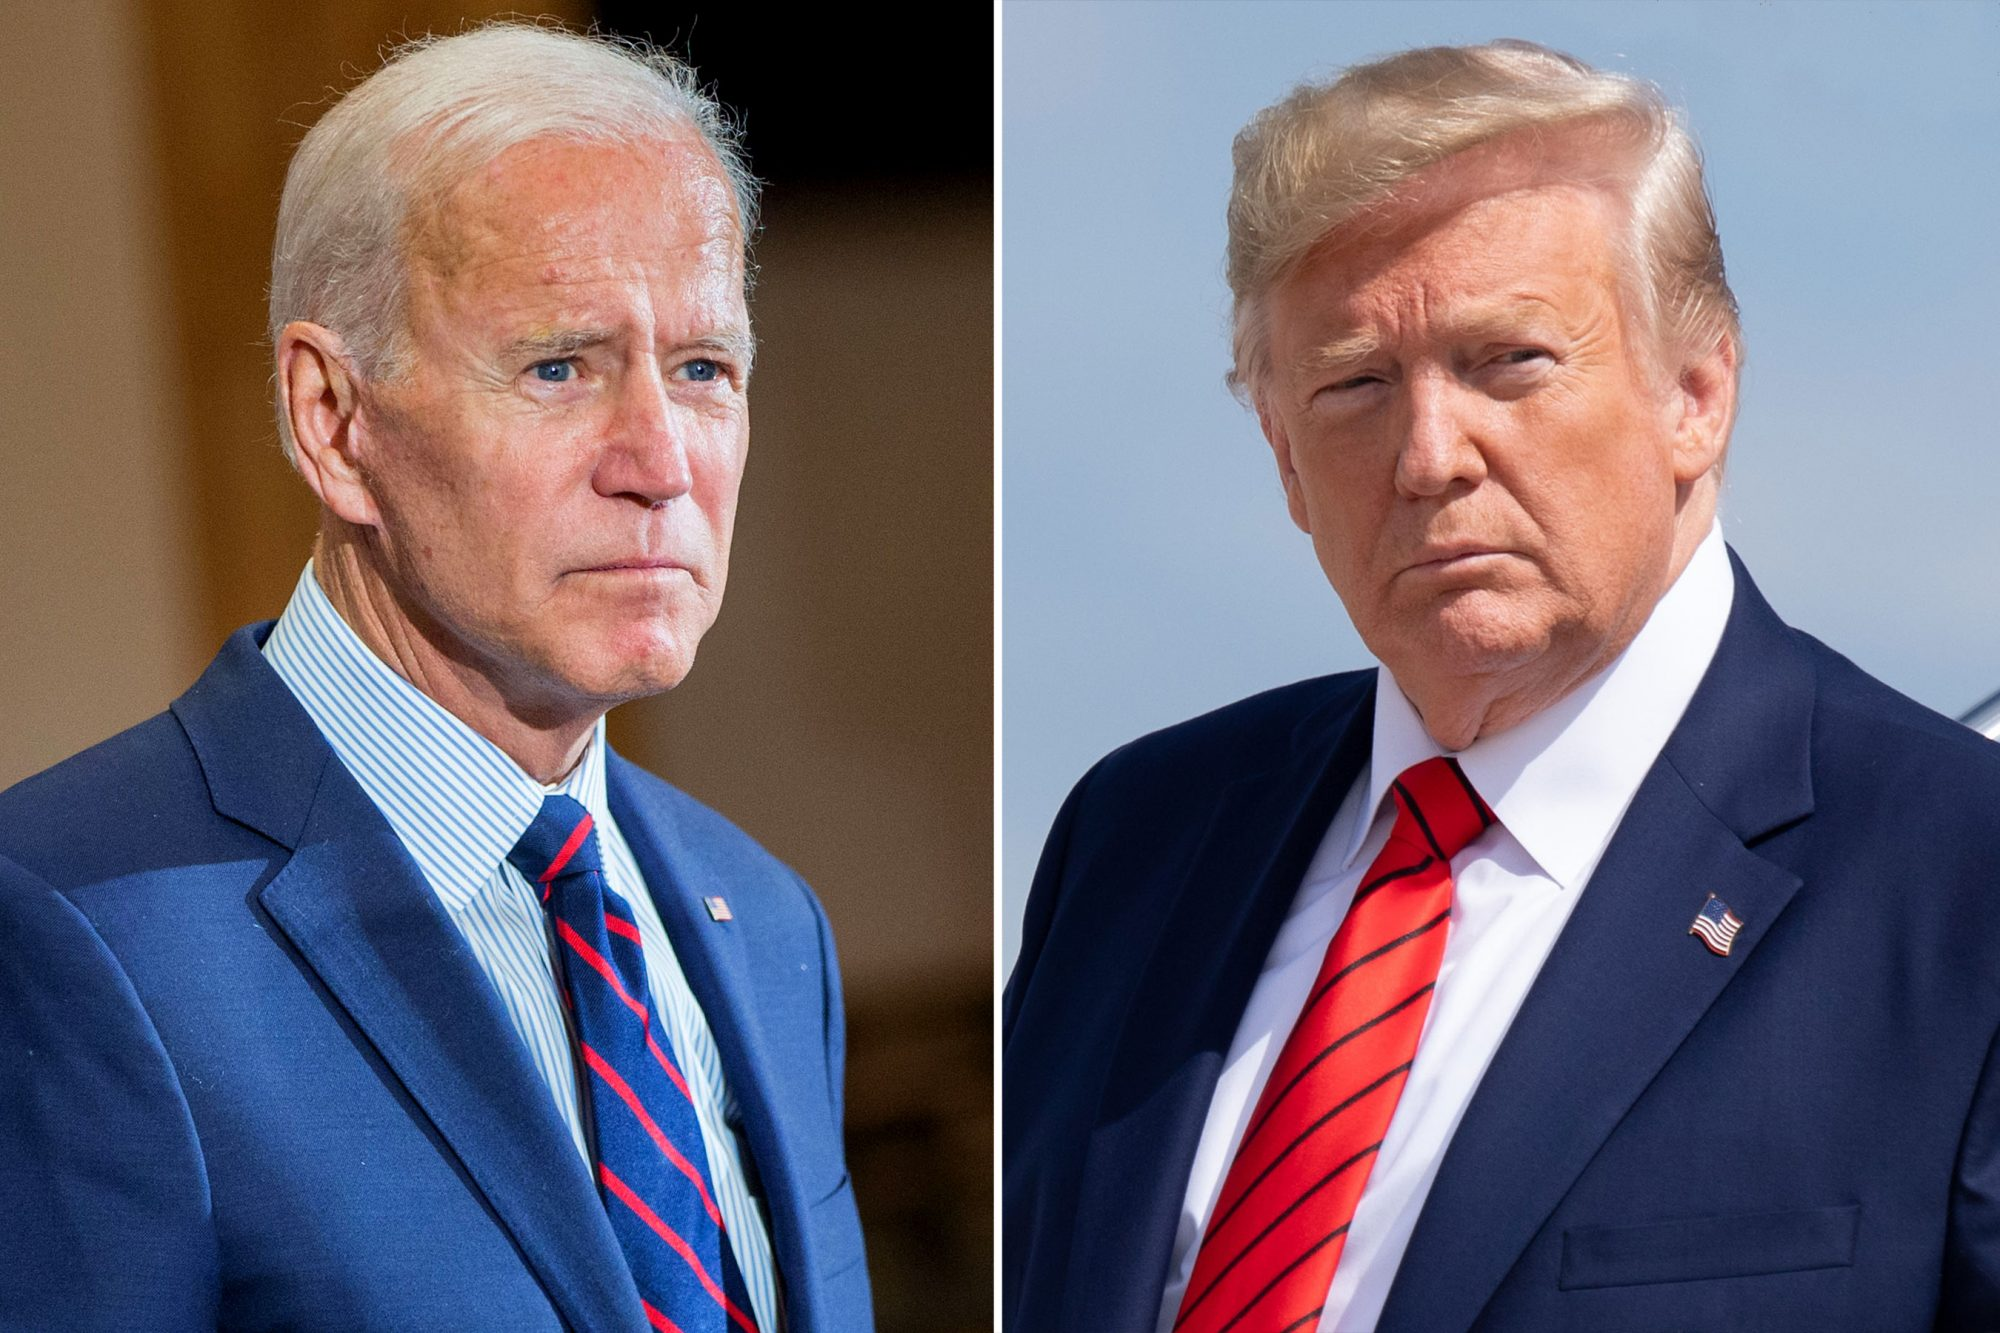 Biden Responds to Trump's Use of Hydroxychloroquine | PEOPLE.com